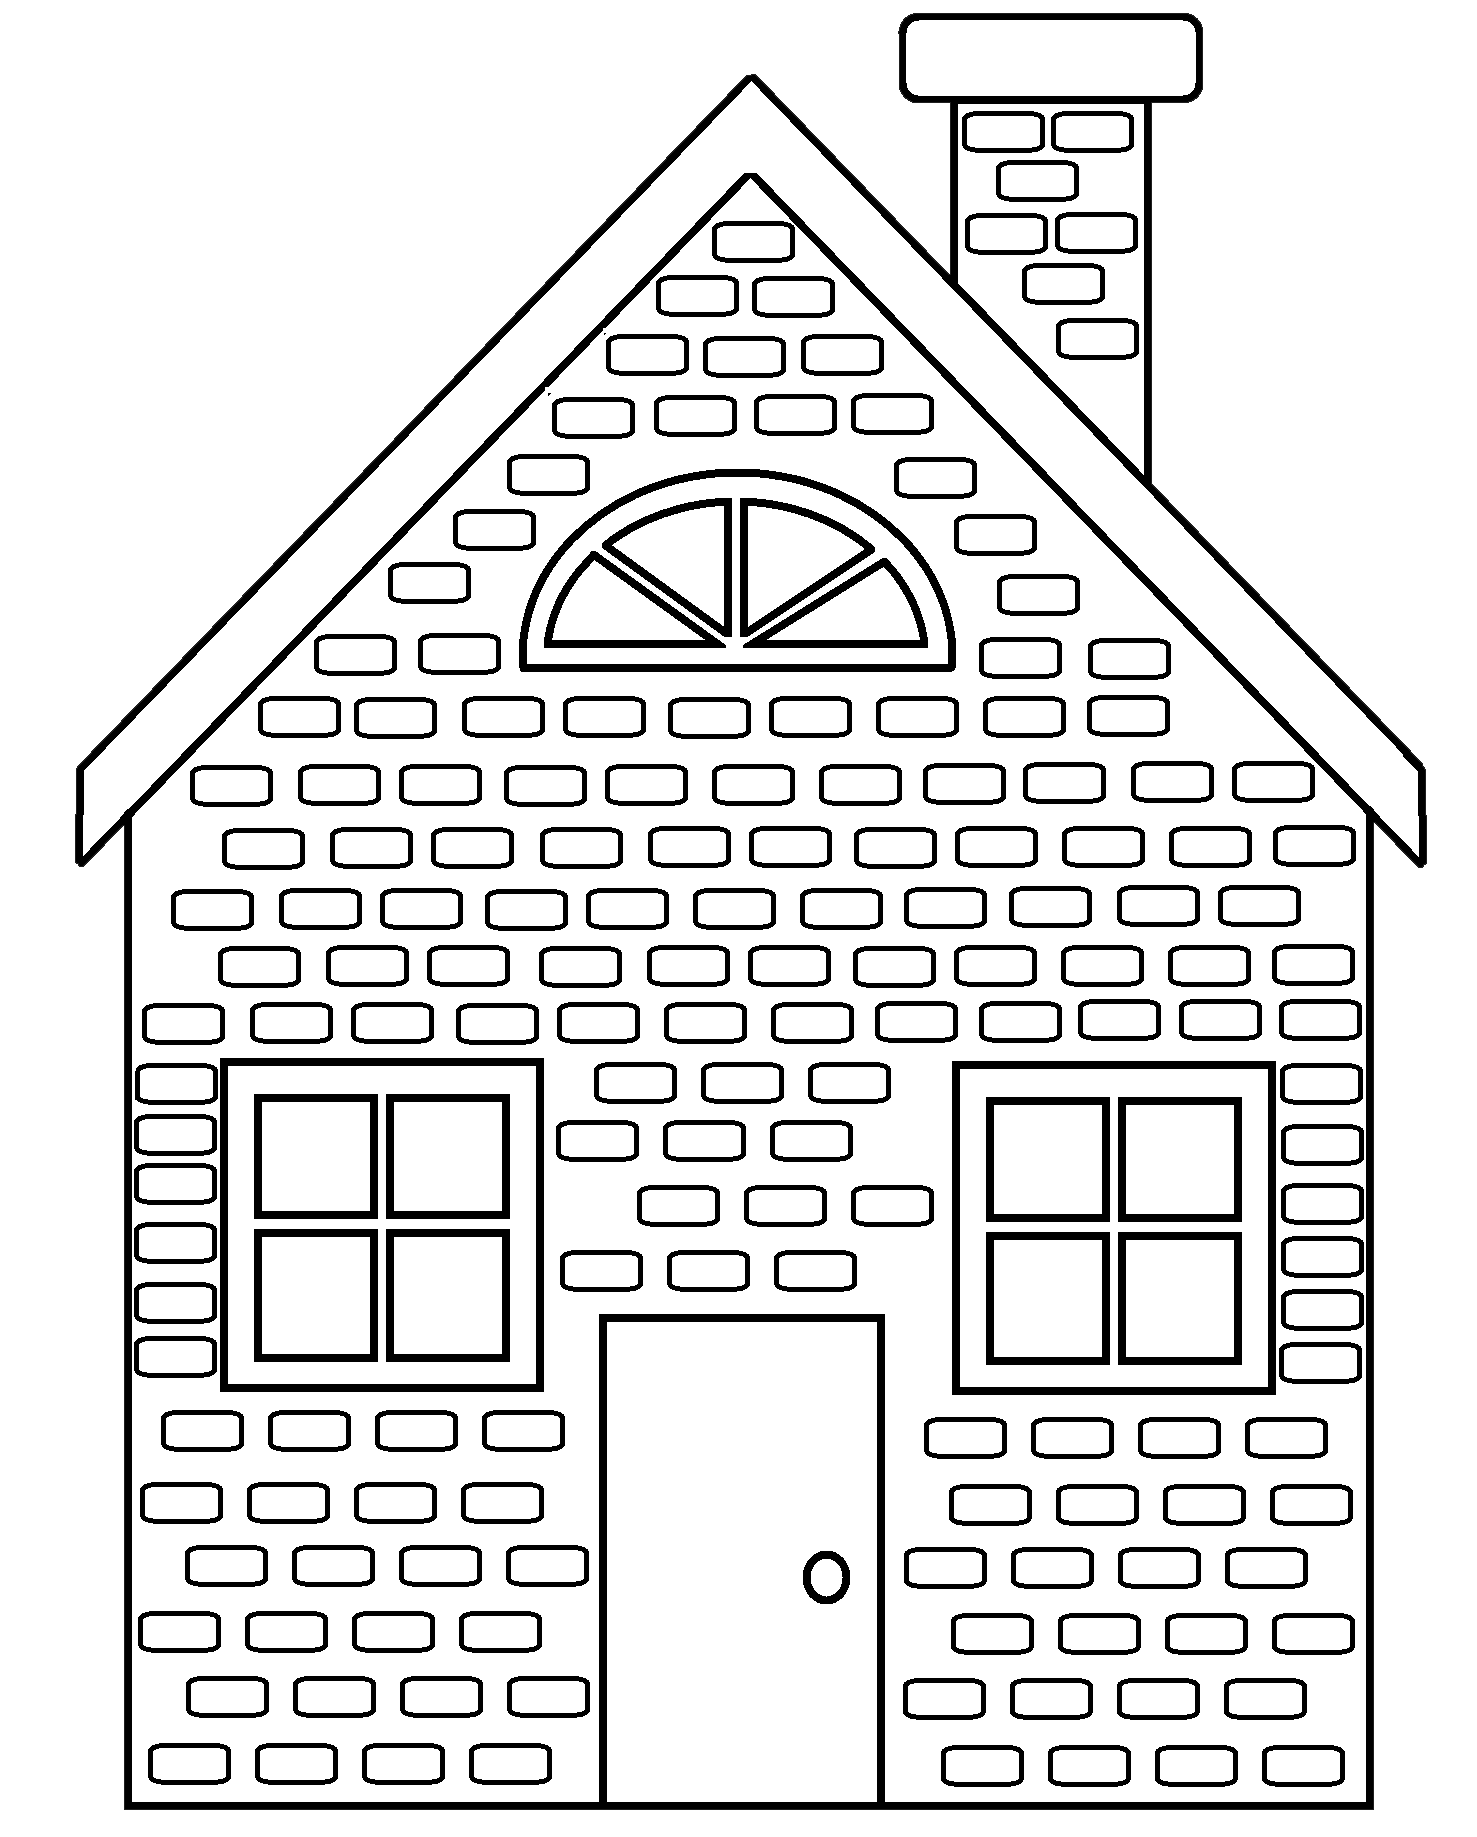 9 Pics of Brick House Coloring Page - 3 Little Pigs Brick House ...